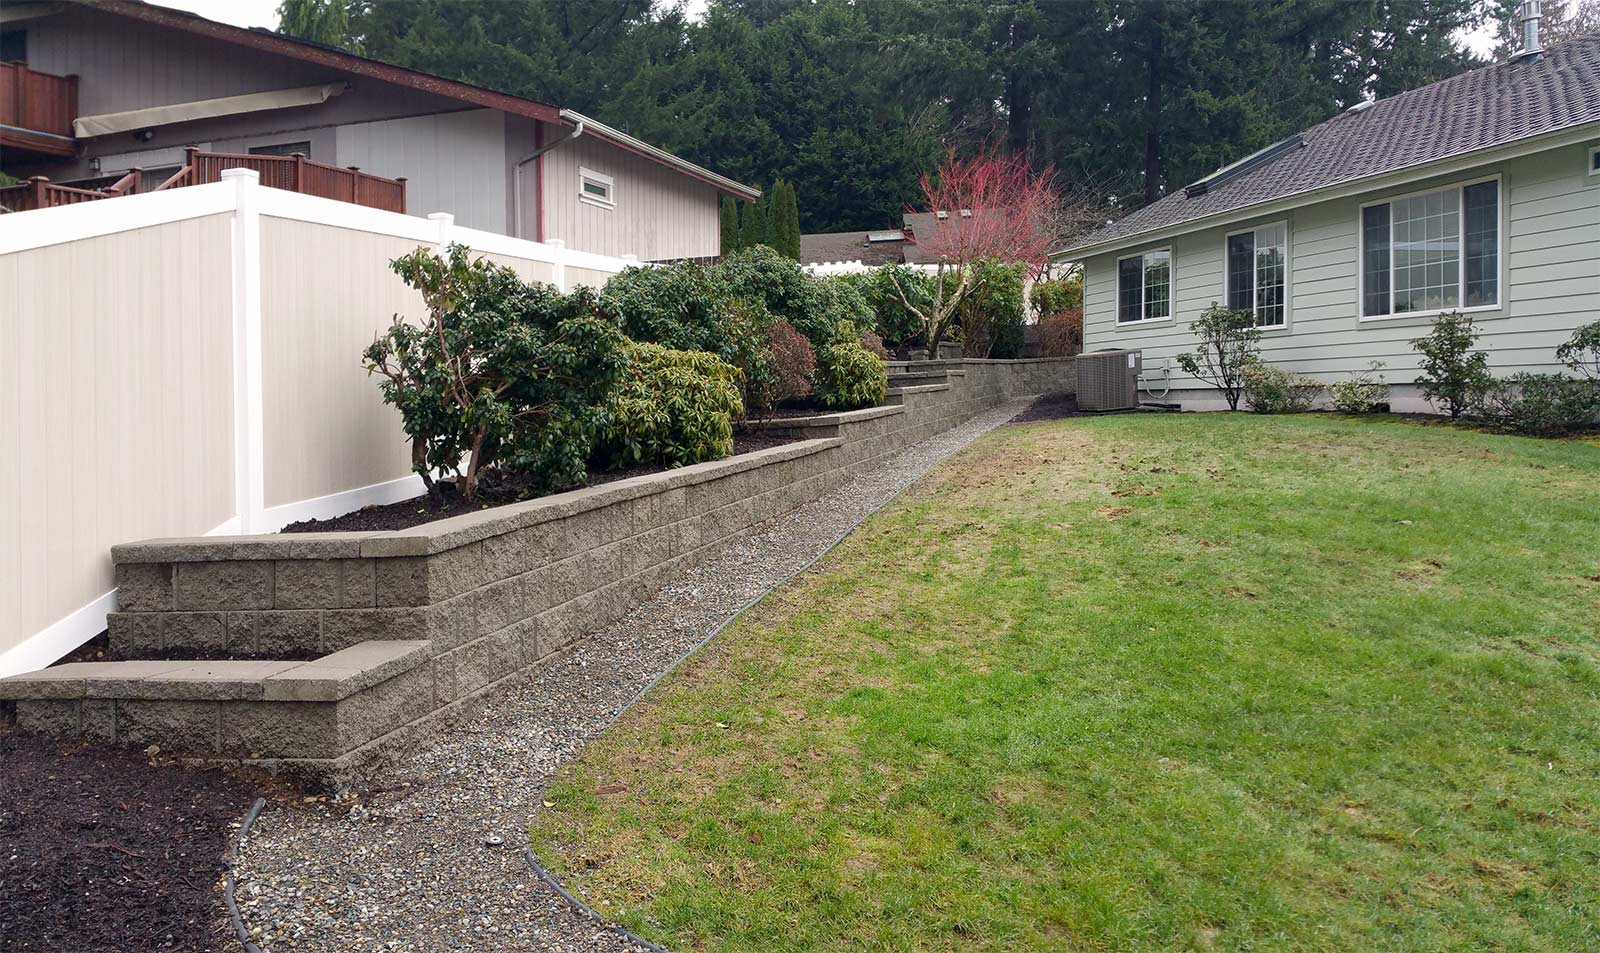 Tiered Retaining Wall With Complementing Vinyl Fence Point To The Image See How It